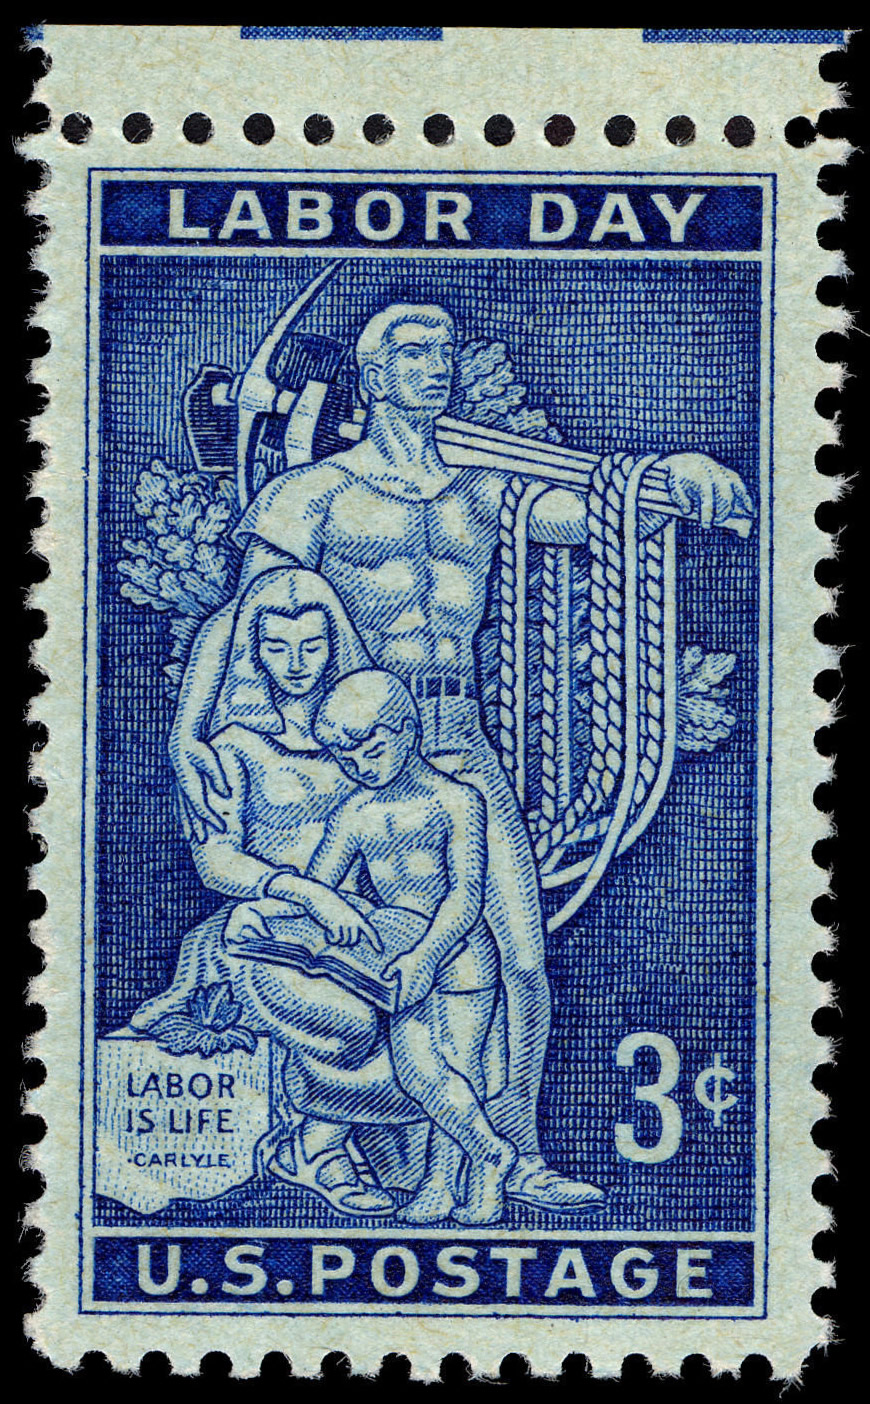 Labor Day stamp 1956